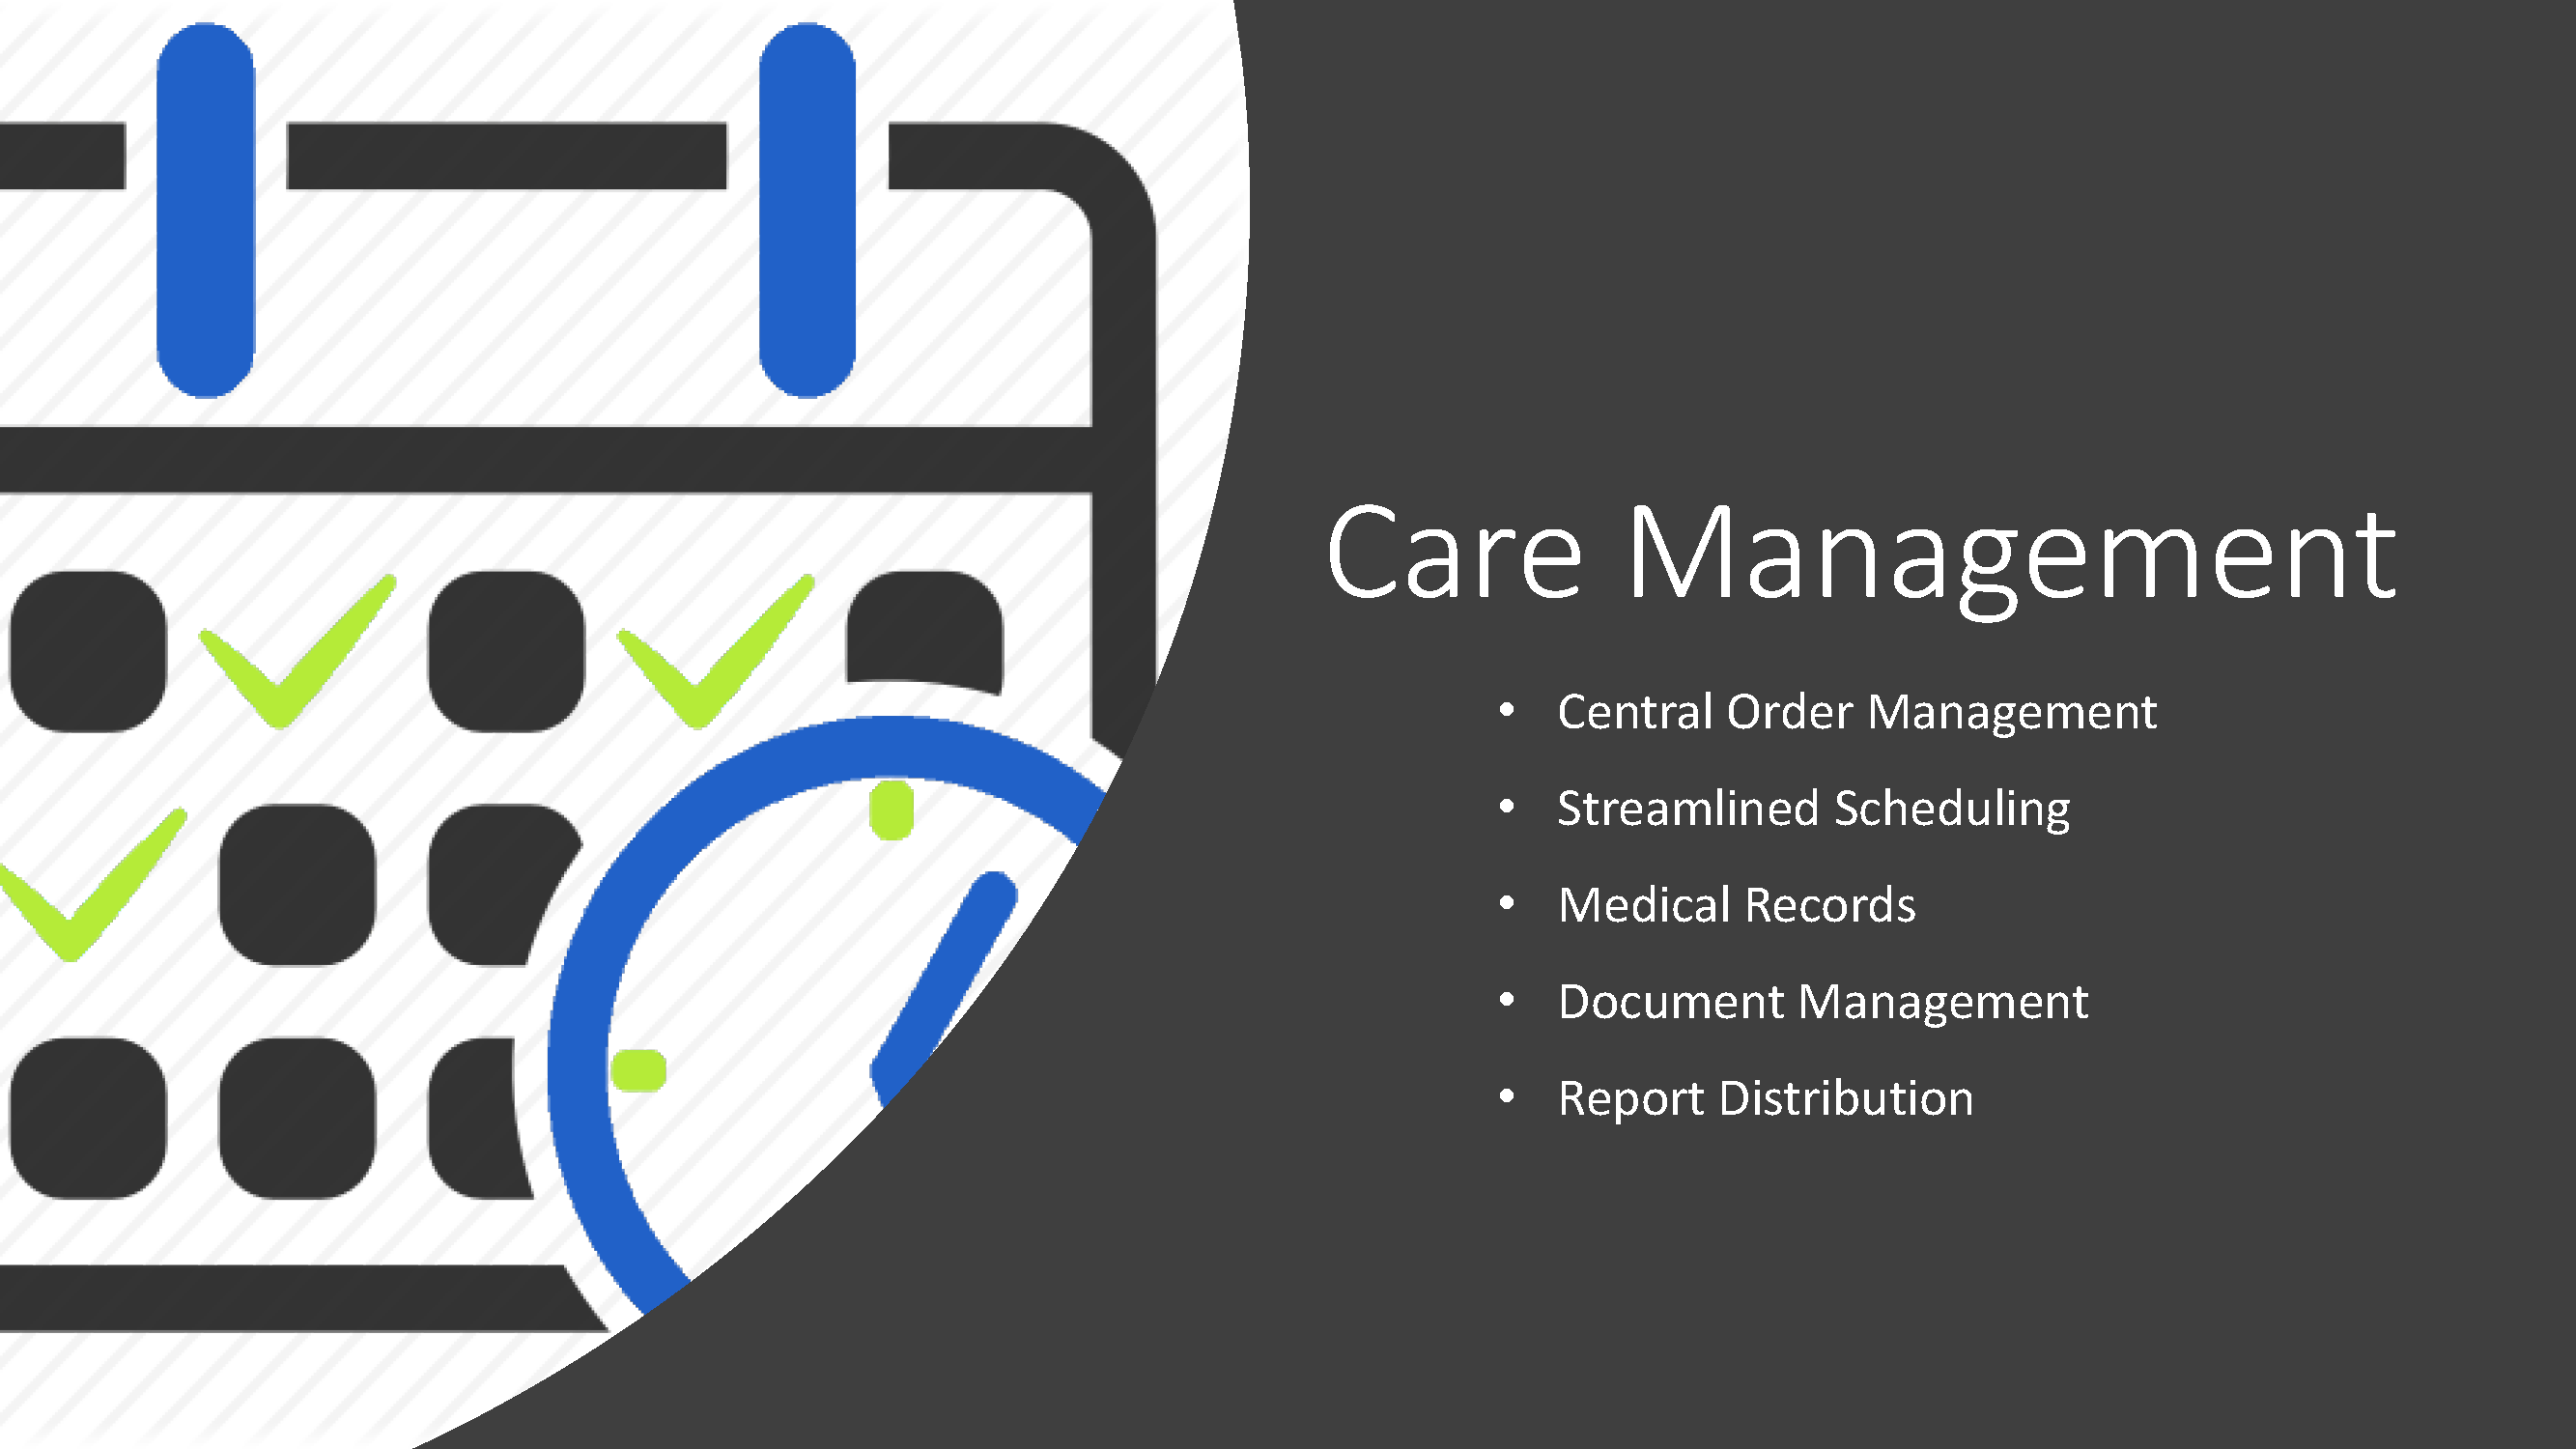 Care Management